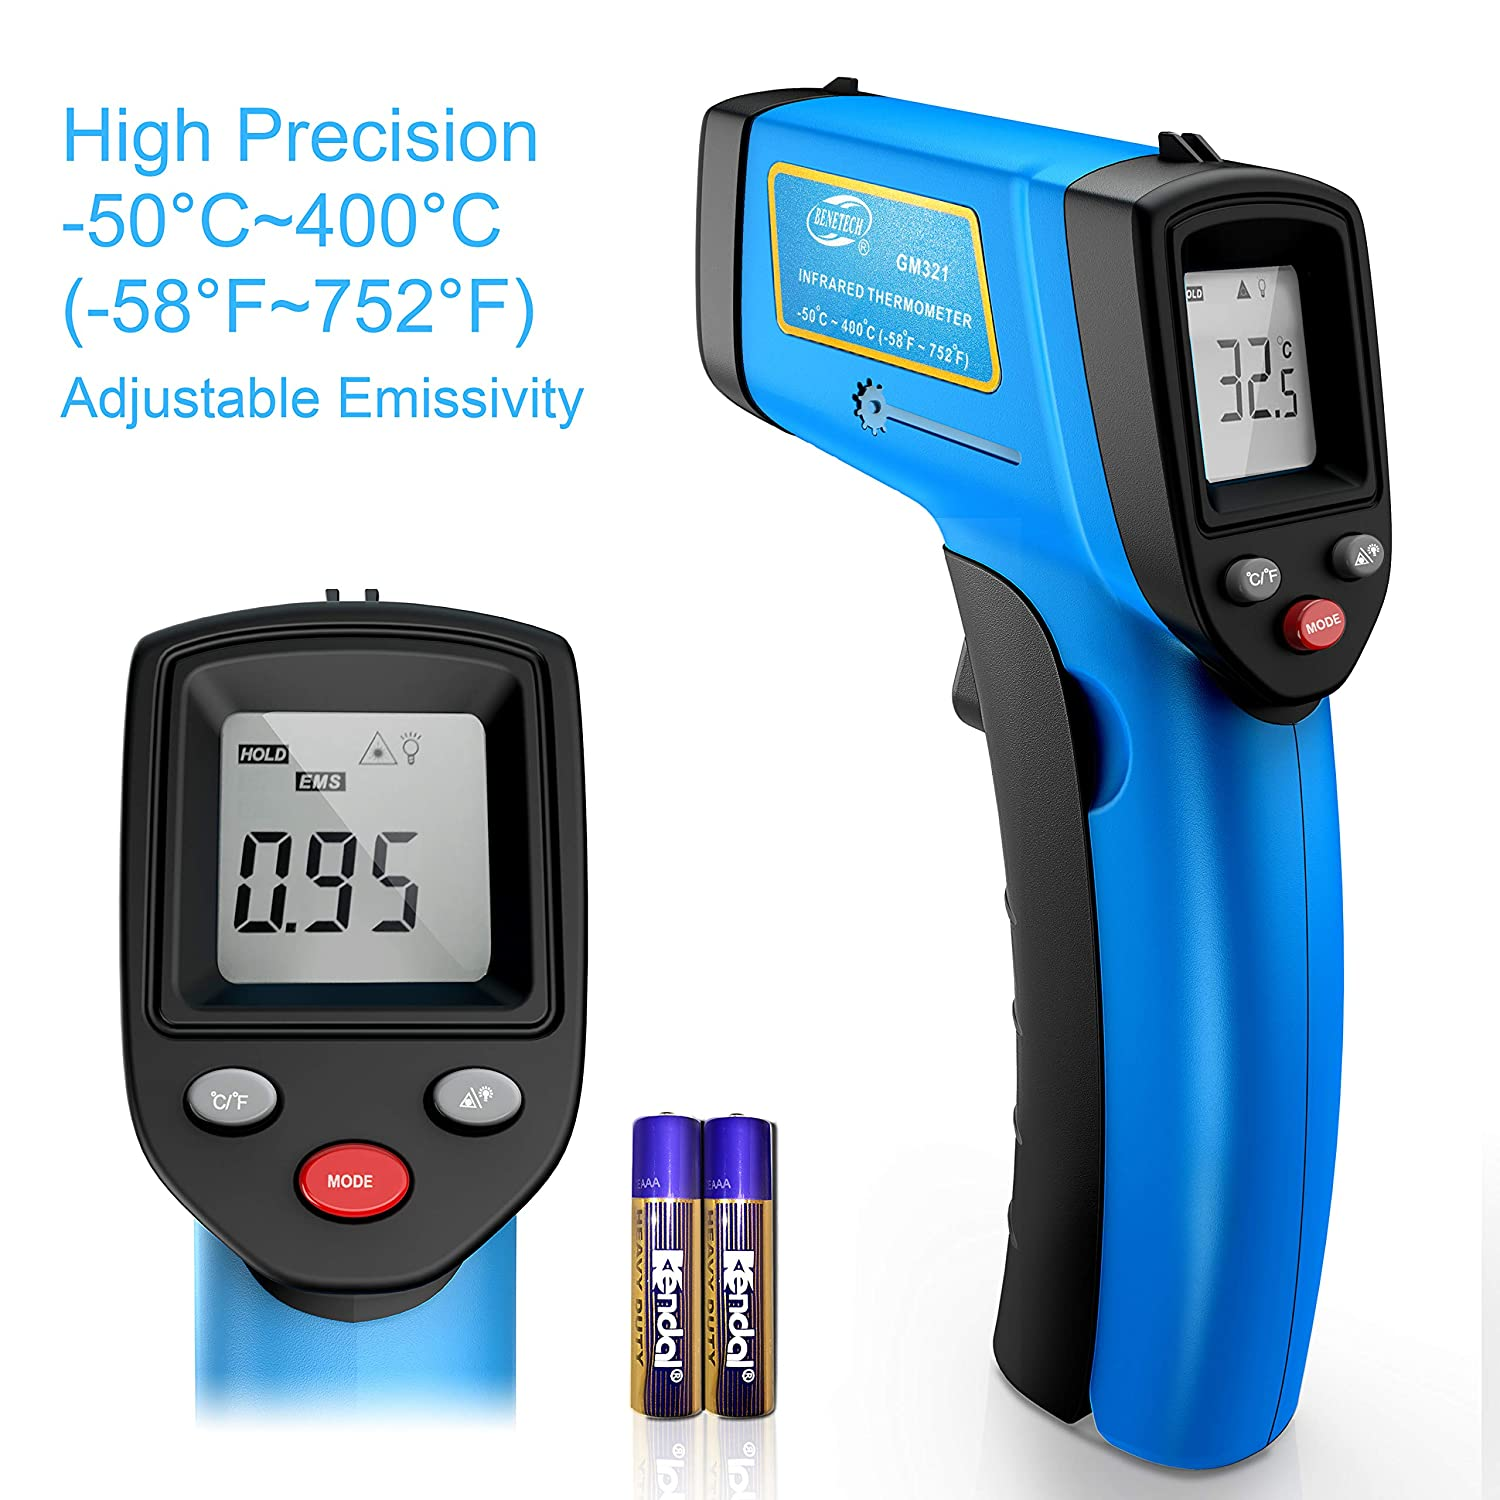 RISWOJOR Laser Infrared Thermometer Non-Contact Digital Temperature Gun,Adjustable Emissivity&MAX/MIN/AT/CAL; -58°F~752°F(-50°C~400°C) Electronic Thermometer for Industrial,Kitchen Cooking,Ovens,Air